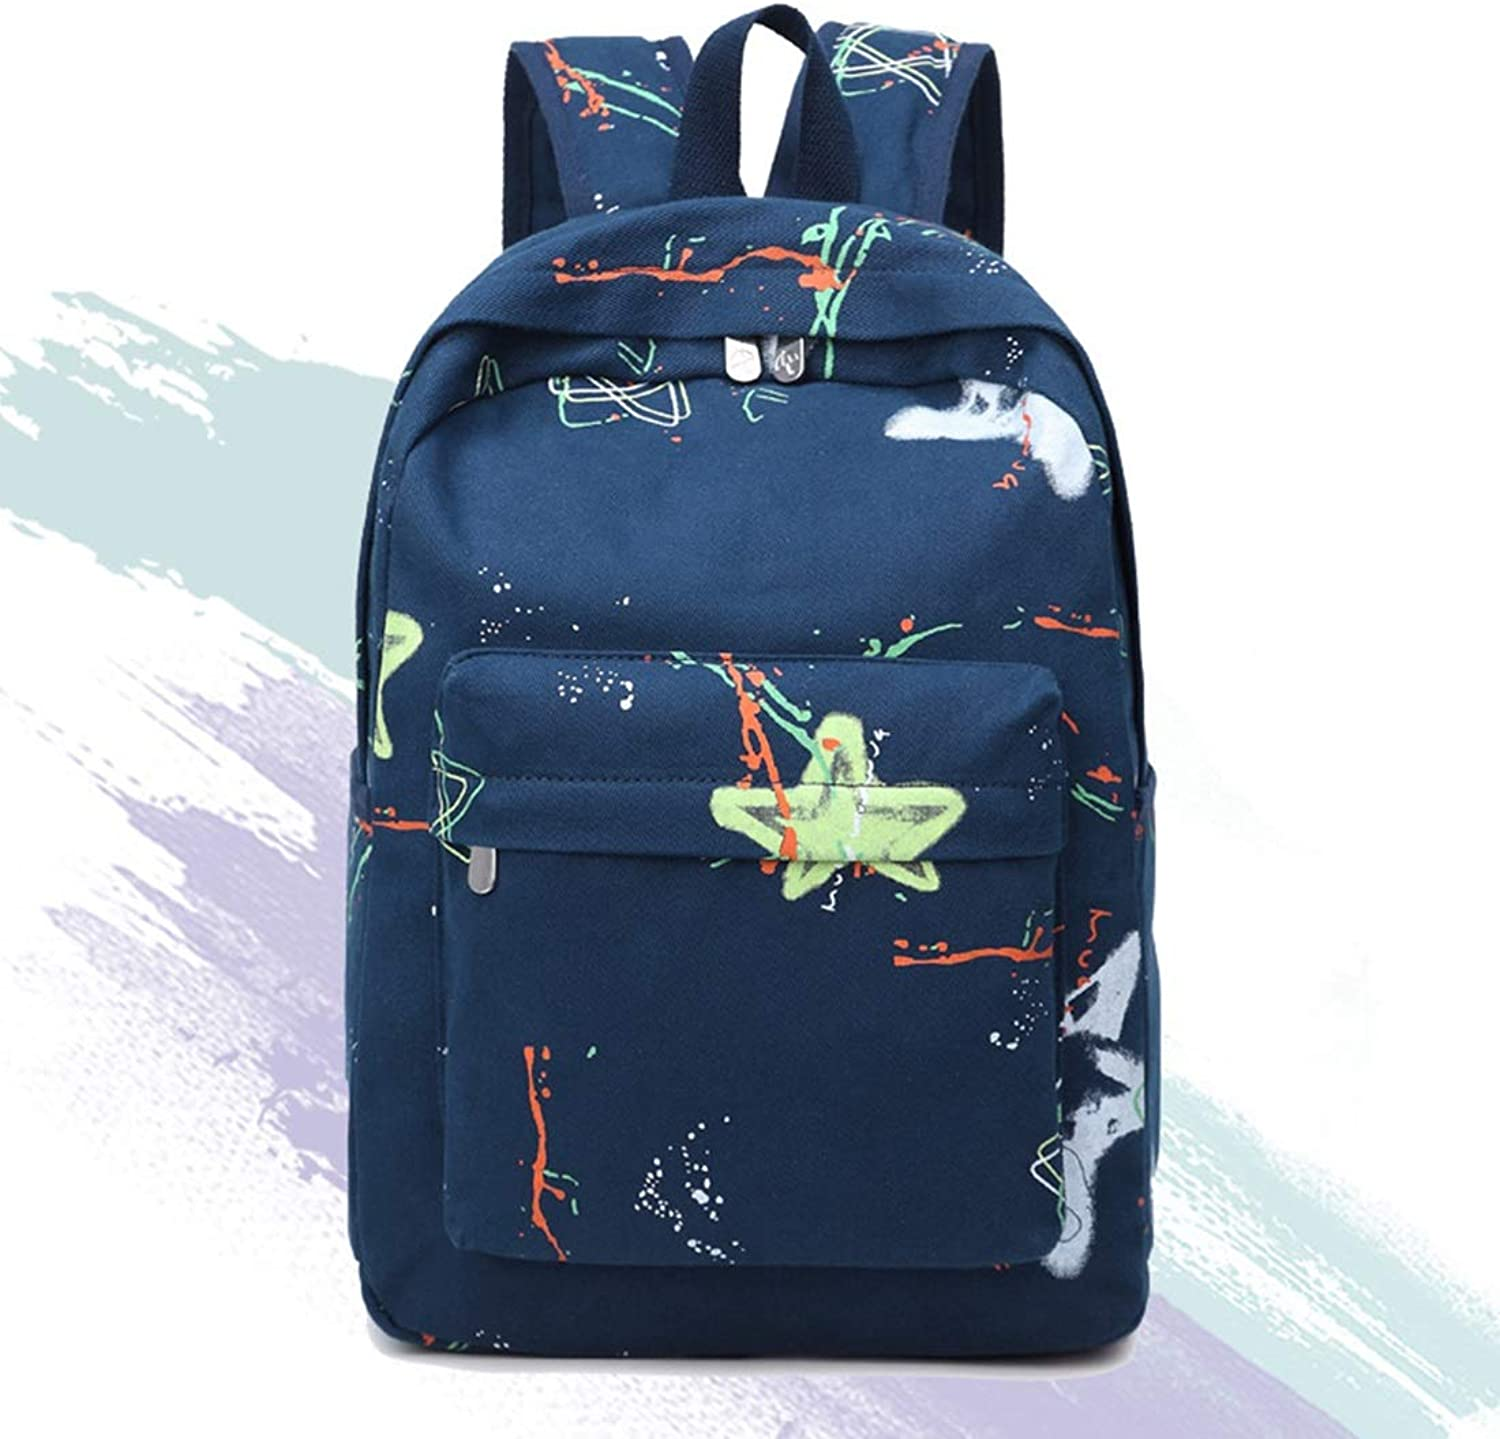 MISSKERVINFENDRIYUN YY4 Rucksack Bag Ladies Back Wallet Girls High School Student Student Everyday Commuter Light Weight Large Capacity a4 Size (color   blueee)